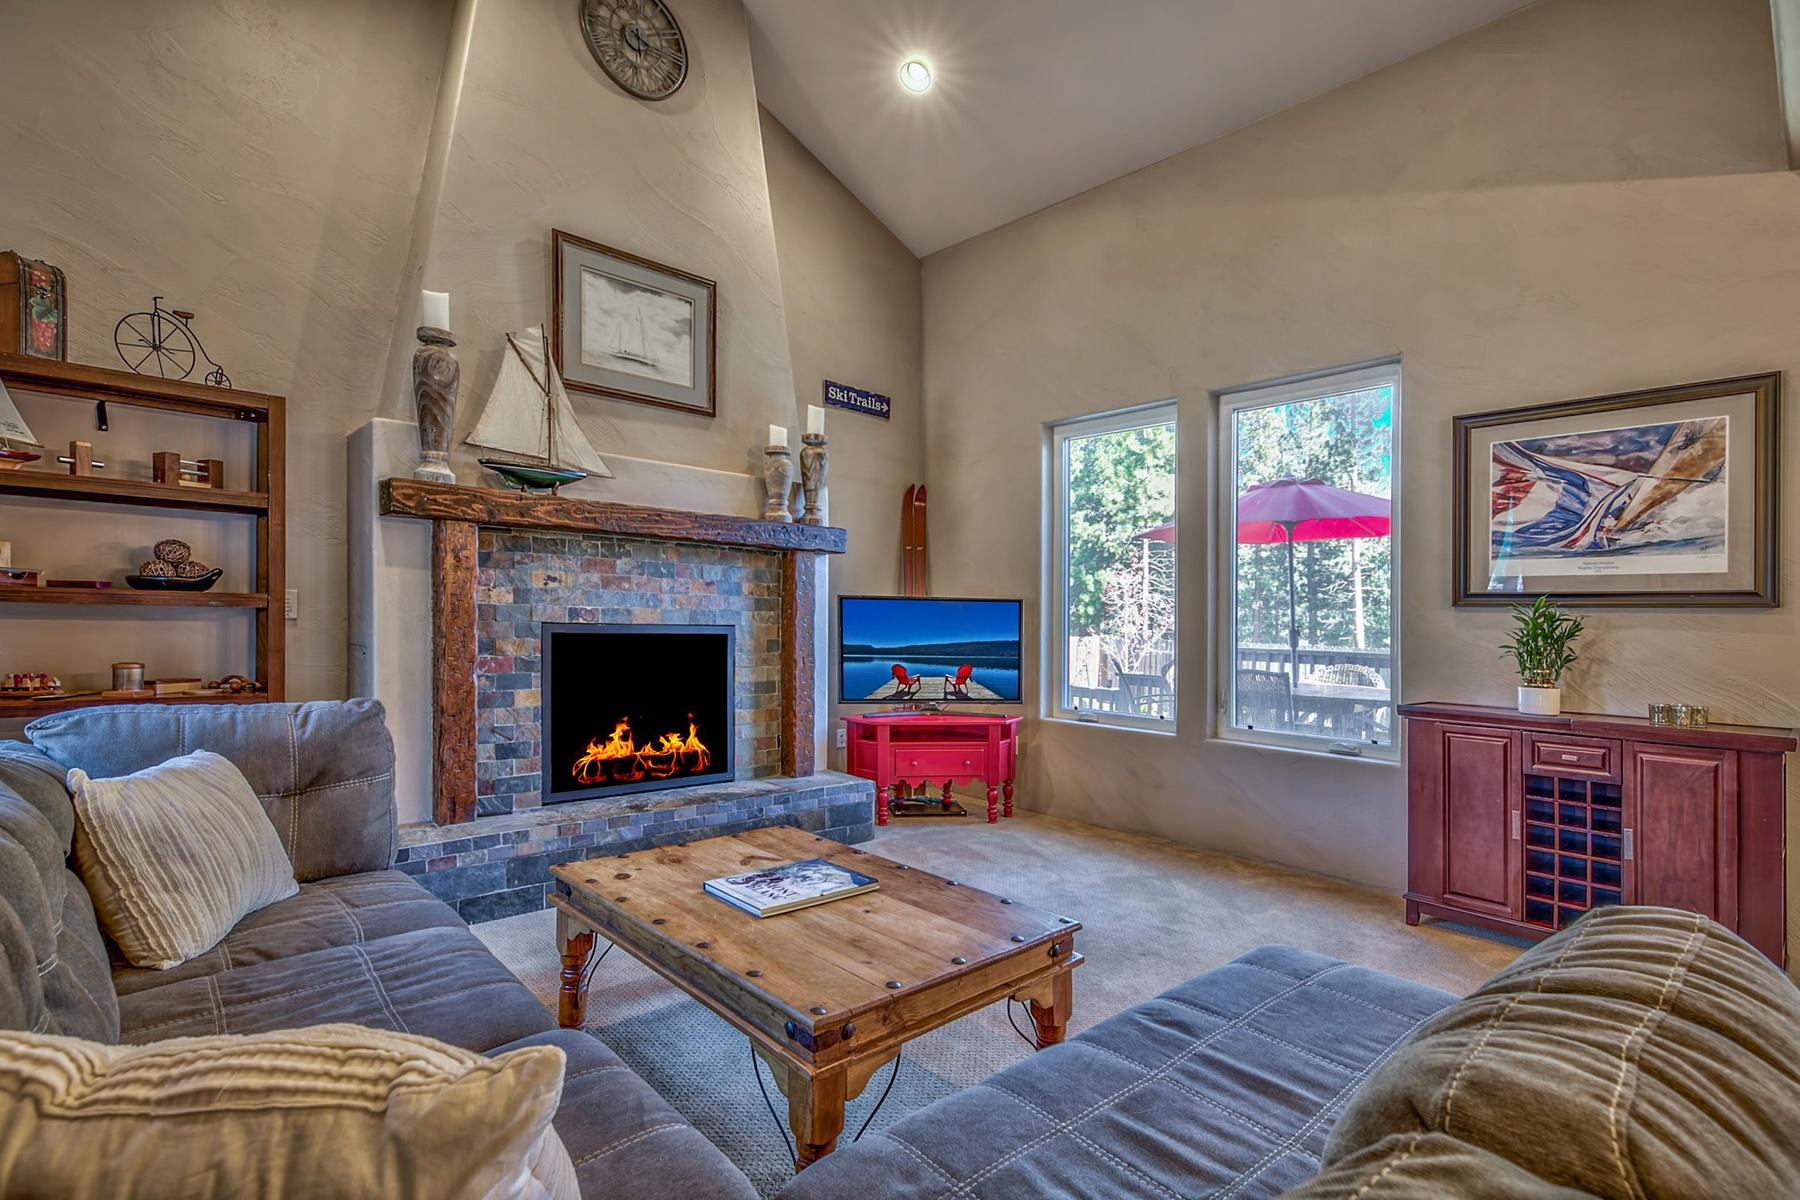 Additional photo for property listing at 1453 Mount Olympia Circle, South Lake Tahoe, CA, 96150 1453 Mount Olympia Cir South Lake Tahoe, California 96150 United States